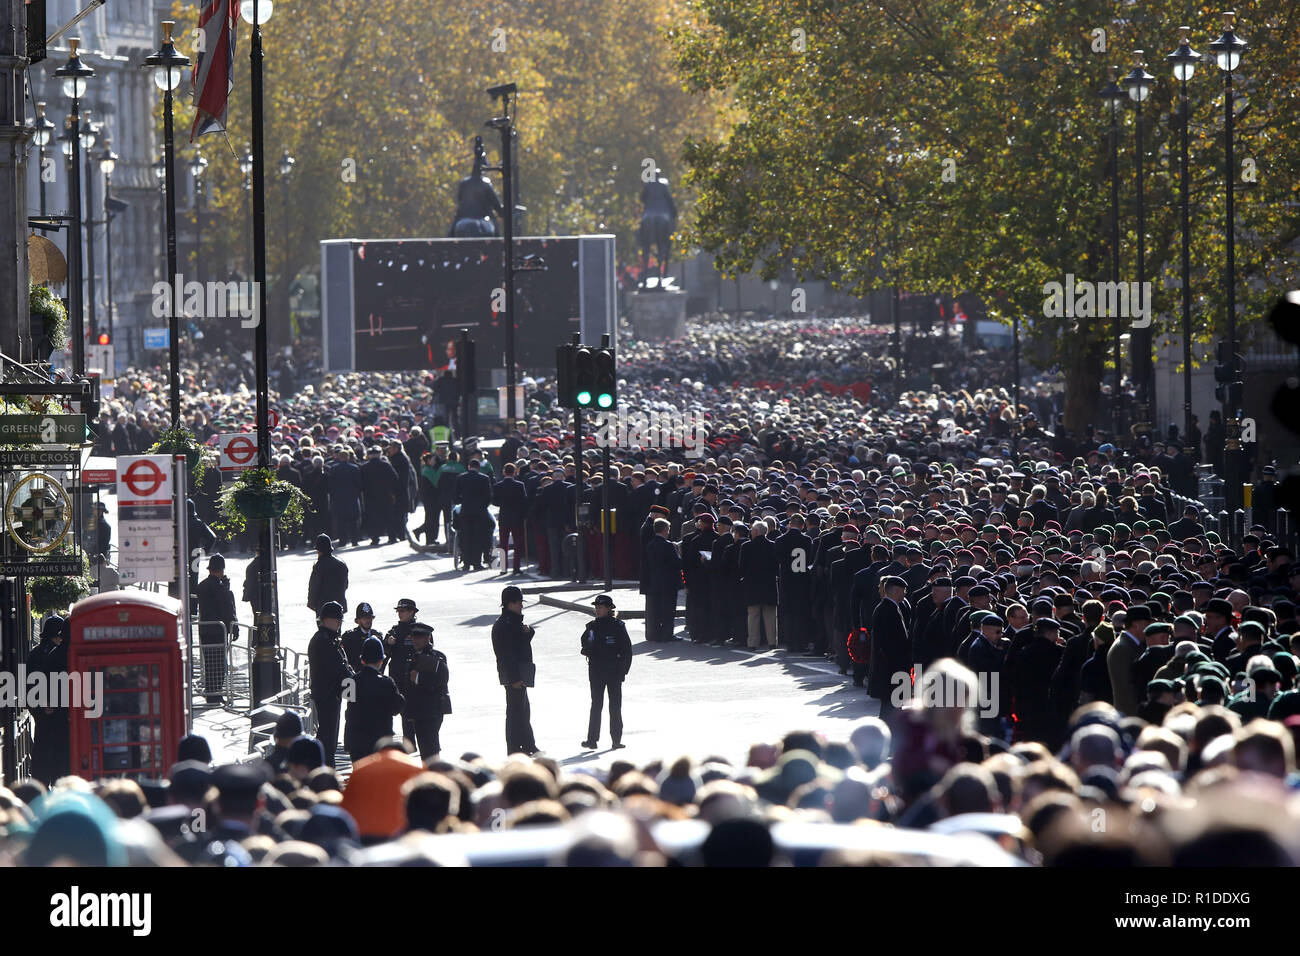 Thousands of servicemen and servicewomen fill Whitehall on Remembrance Sunday before marching past and paying their respects at the Cenotaph. Today marks 100 years since the end of the First World War. Remembrance Sunday, London, on November 11, 2018. - Stock Image